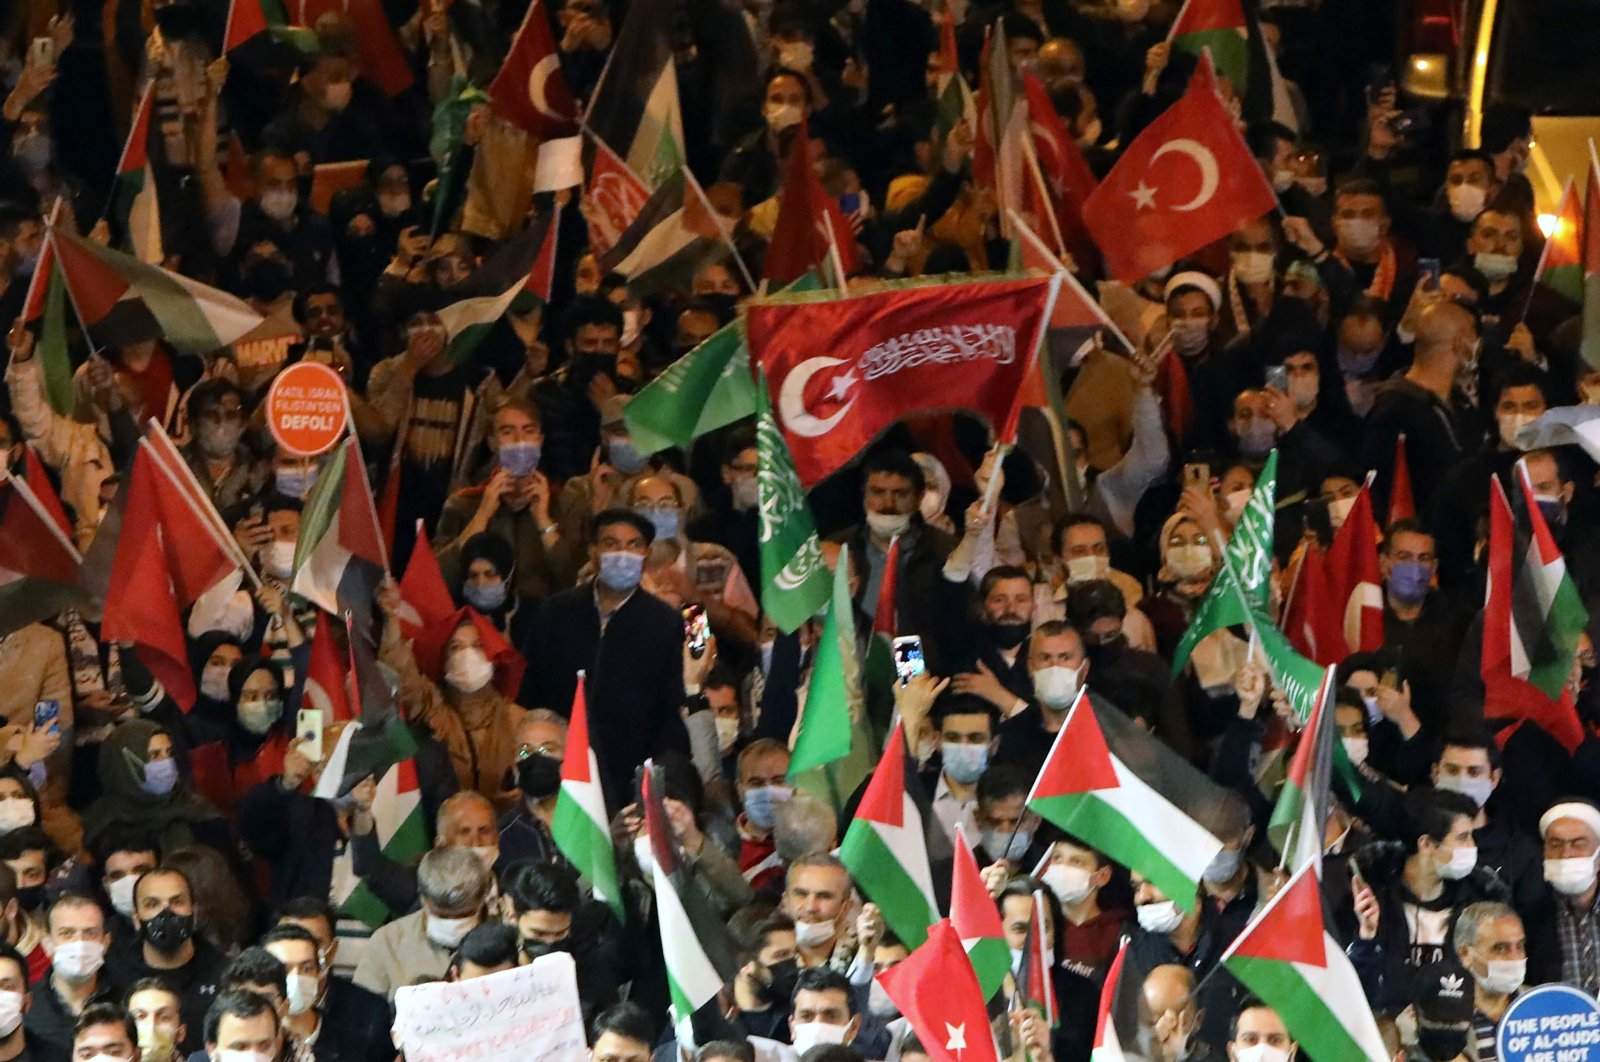 This file photo shows protesters holding Palestine and Turkish national flags and chant slogans during a demonstration outside the Israel Consulate General in Istanbul, Turkey, late on May 10, 2021. (AFP Photo)